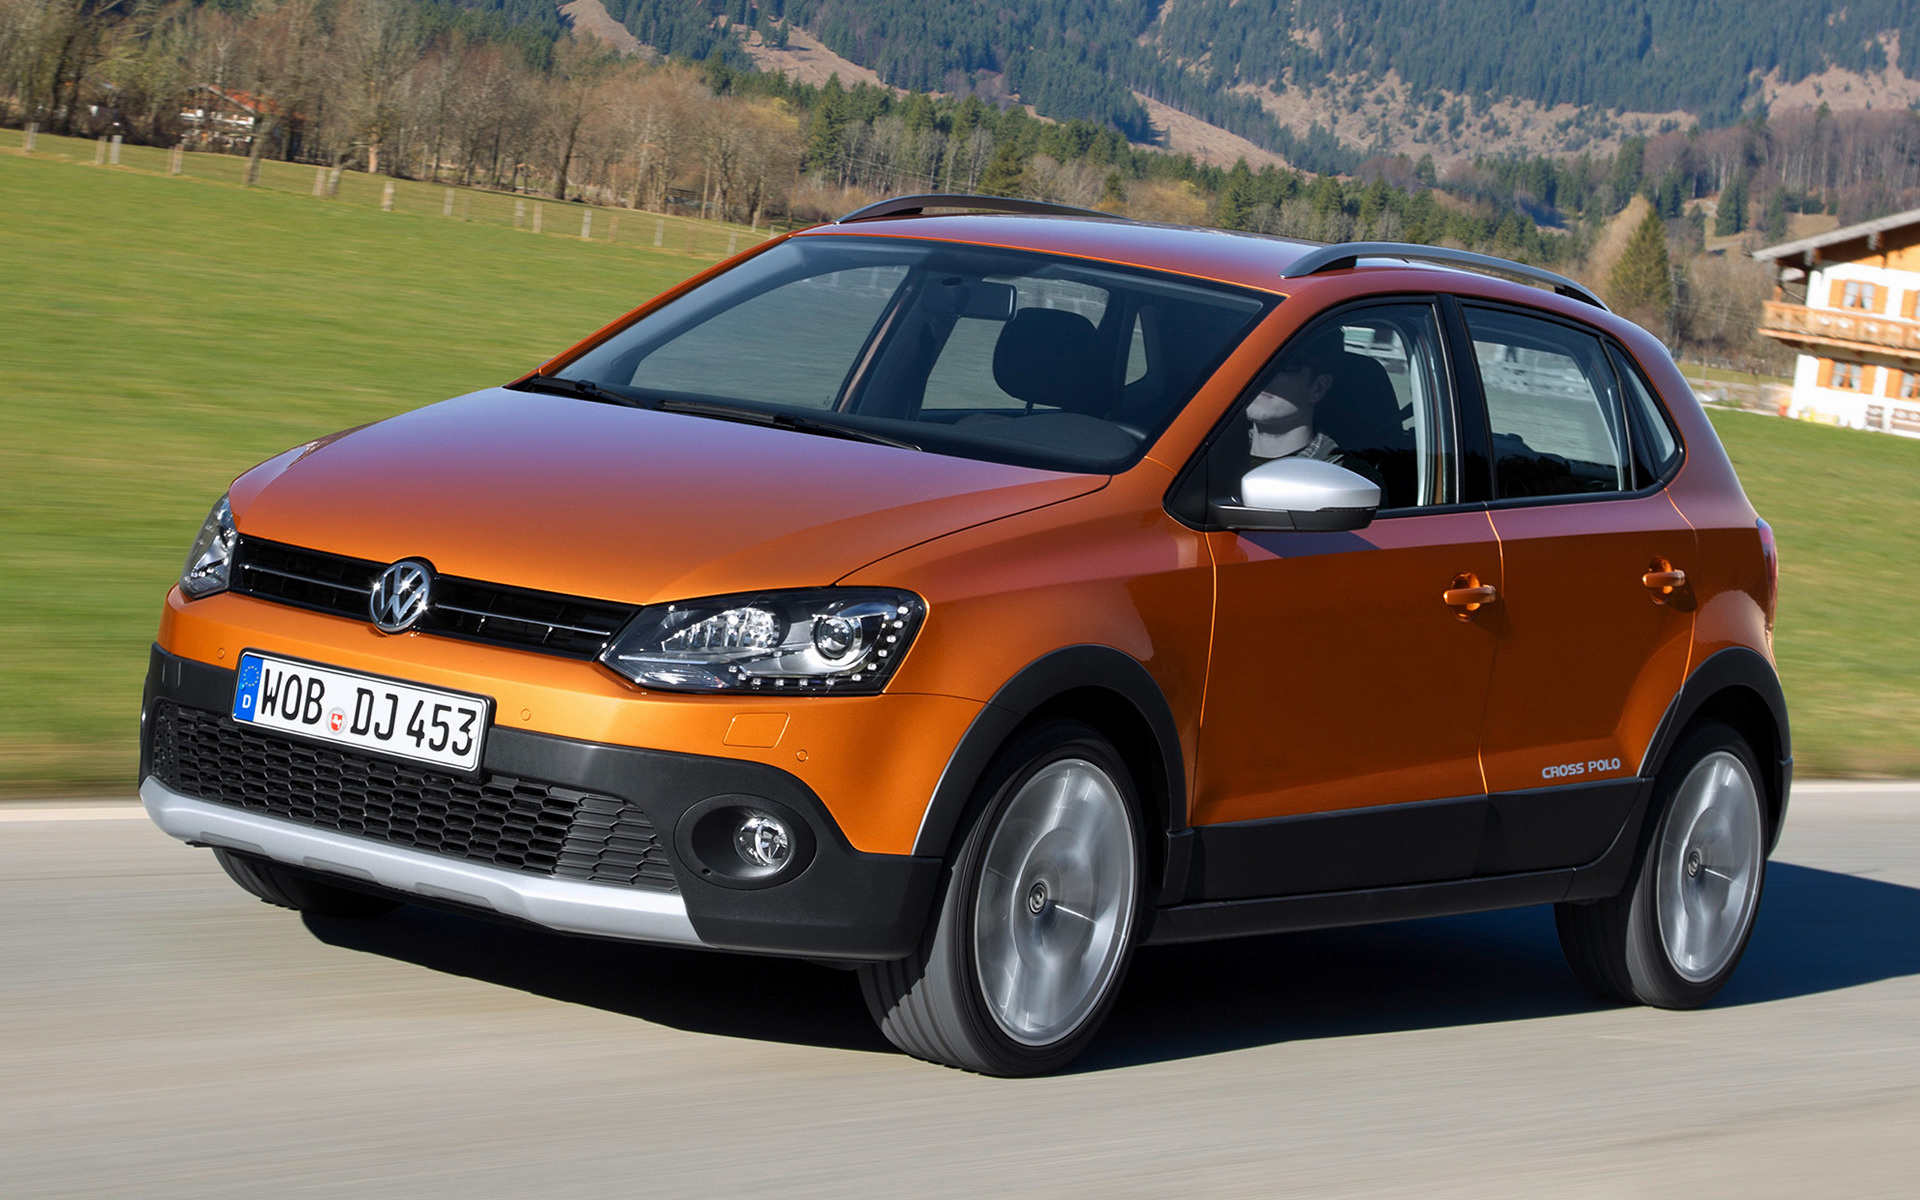 Volkswagen Cross Polo 2014 Wallpapers and HD Images